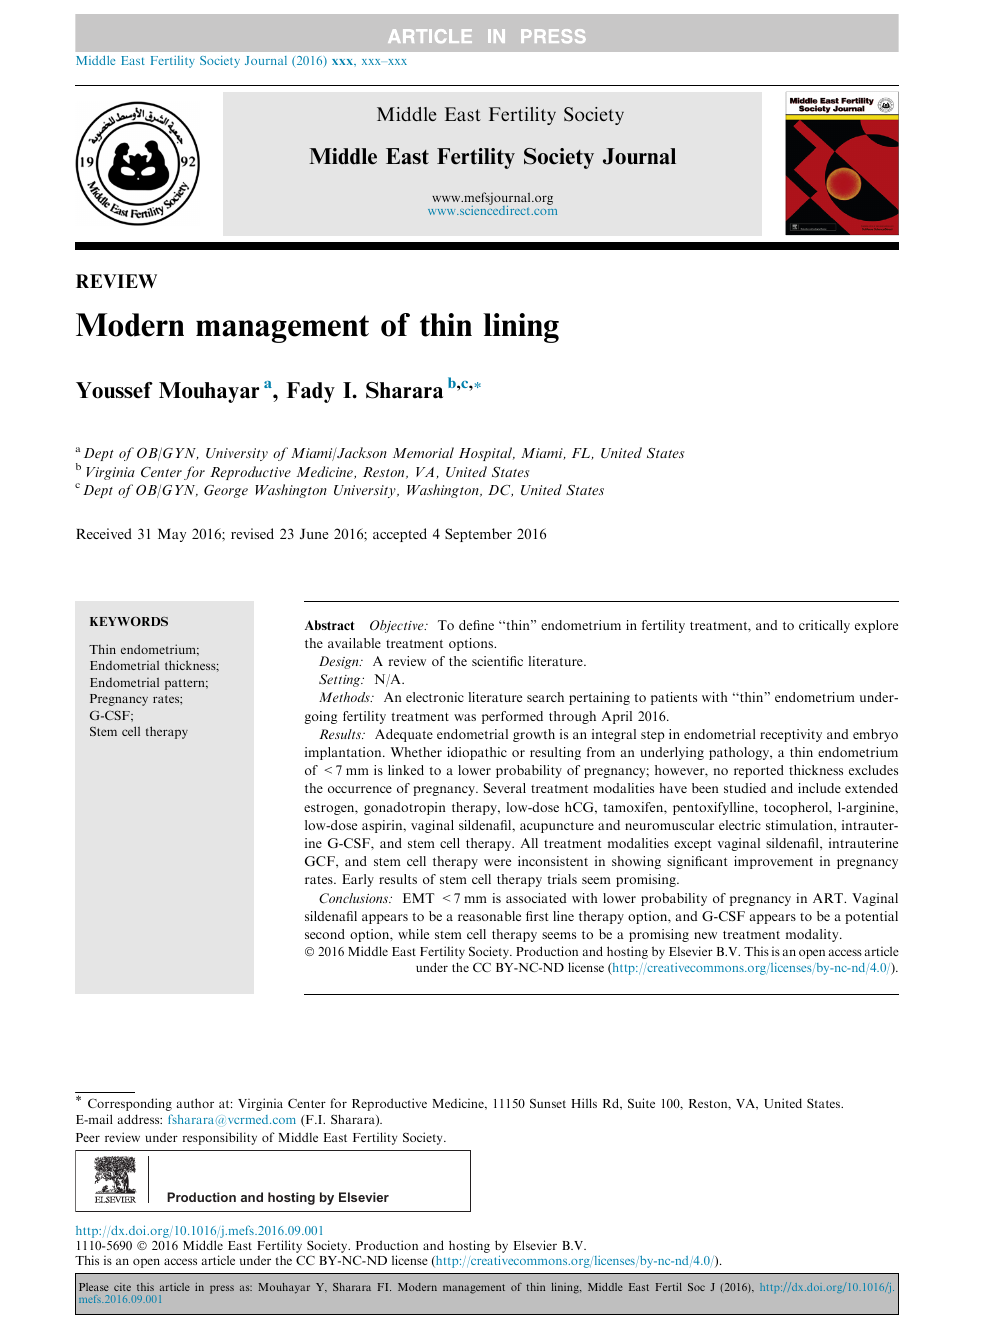 Modern management of thin lining – topic of research paper